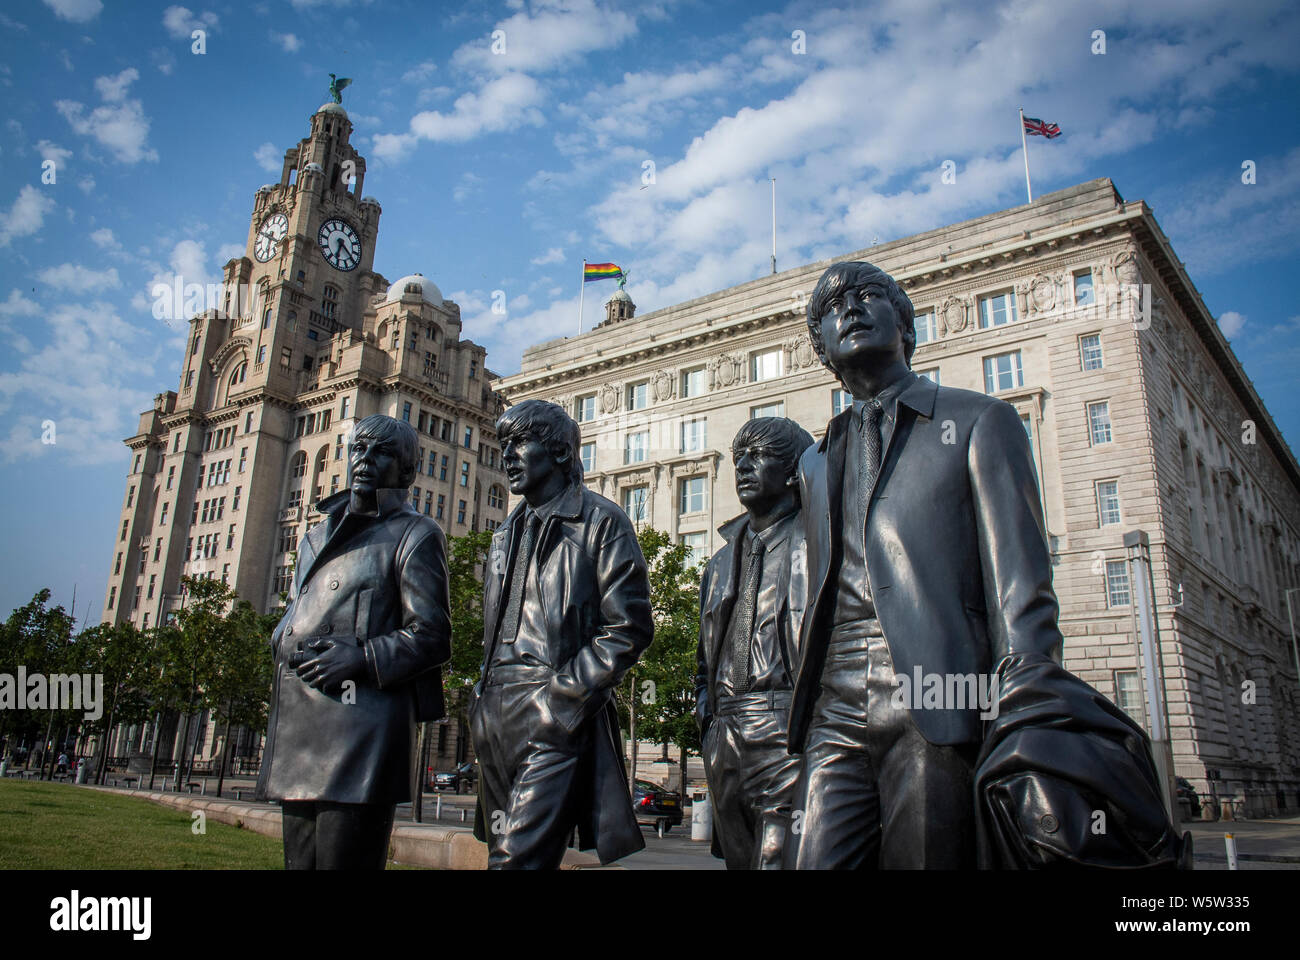 The Beatles statue at Pier Head, Liverpool. UK. Stock Photo